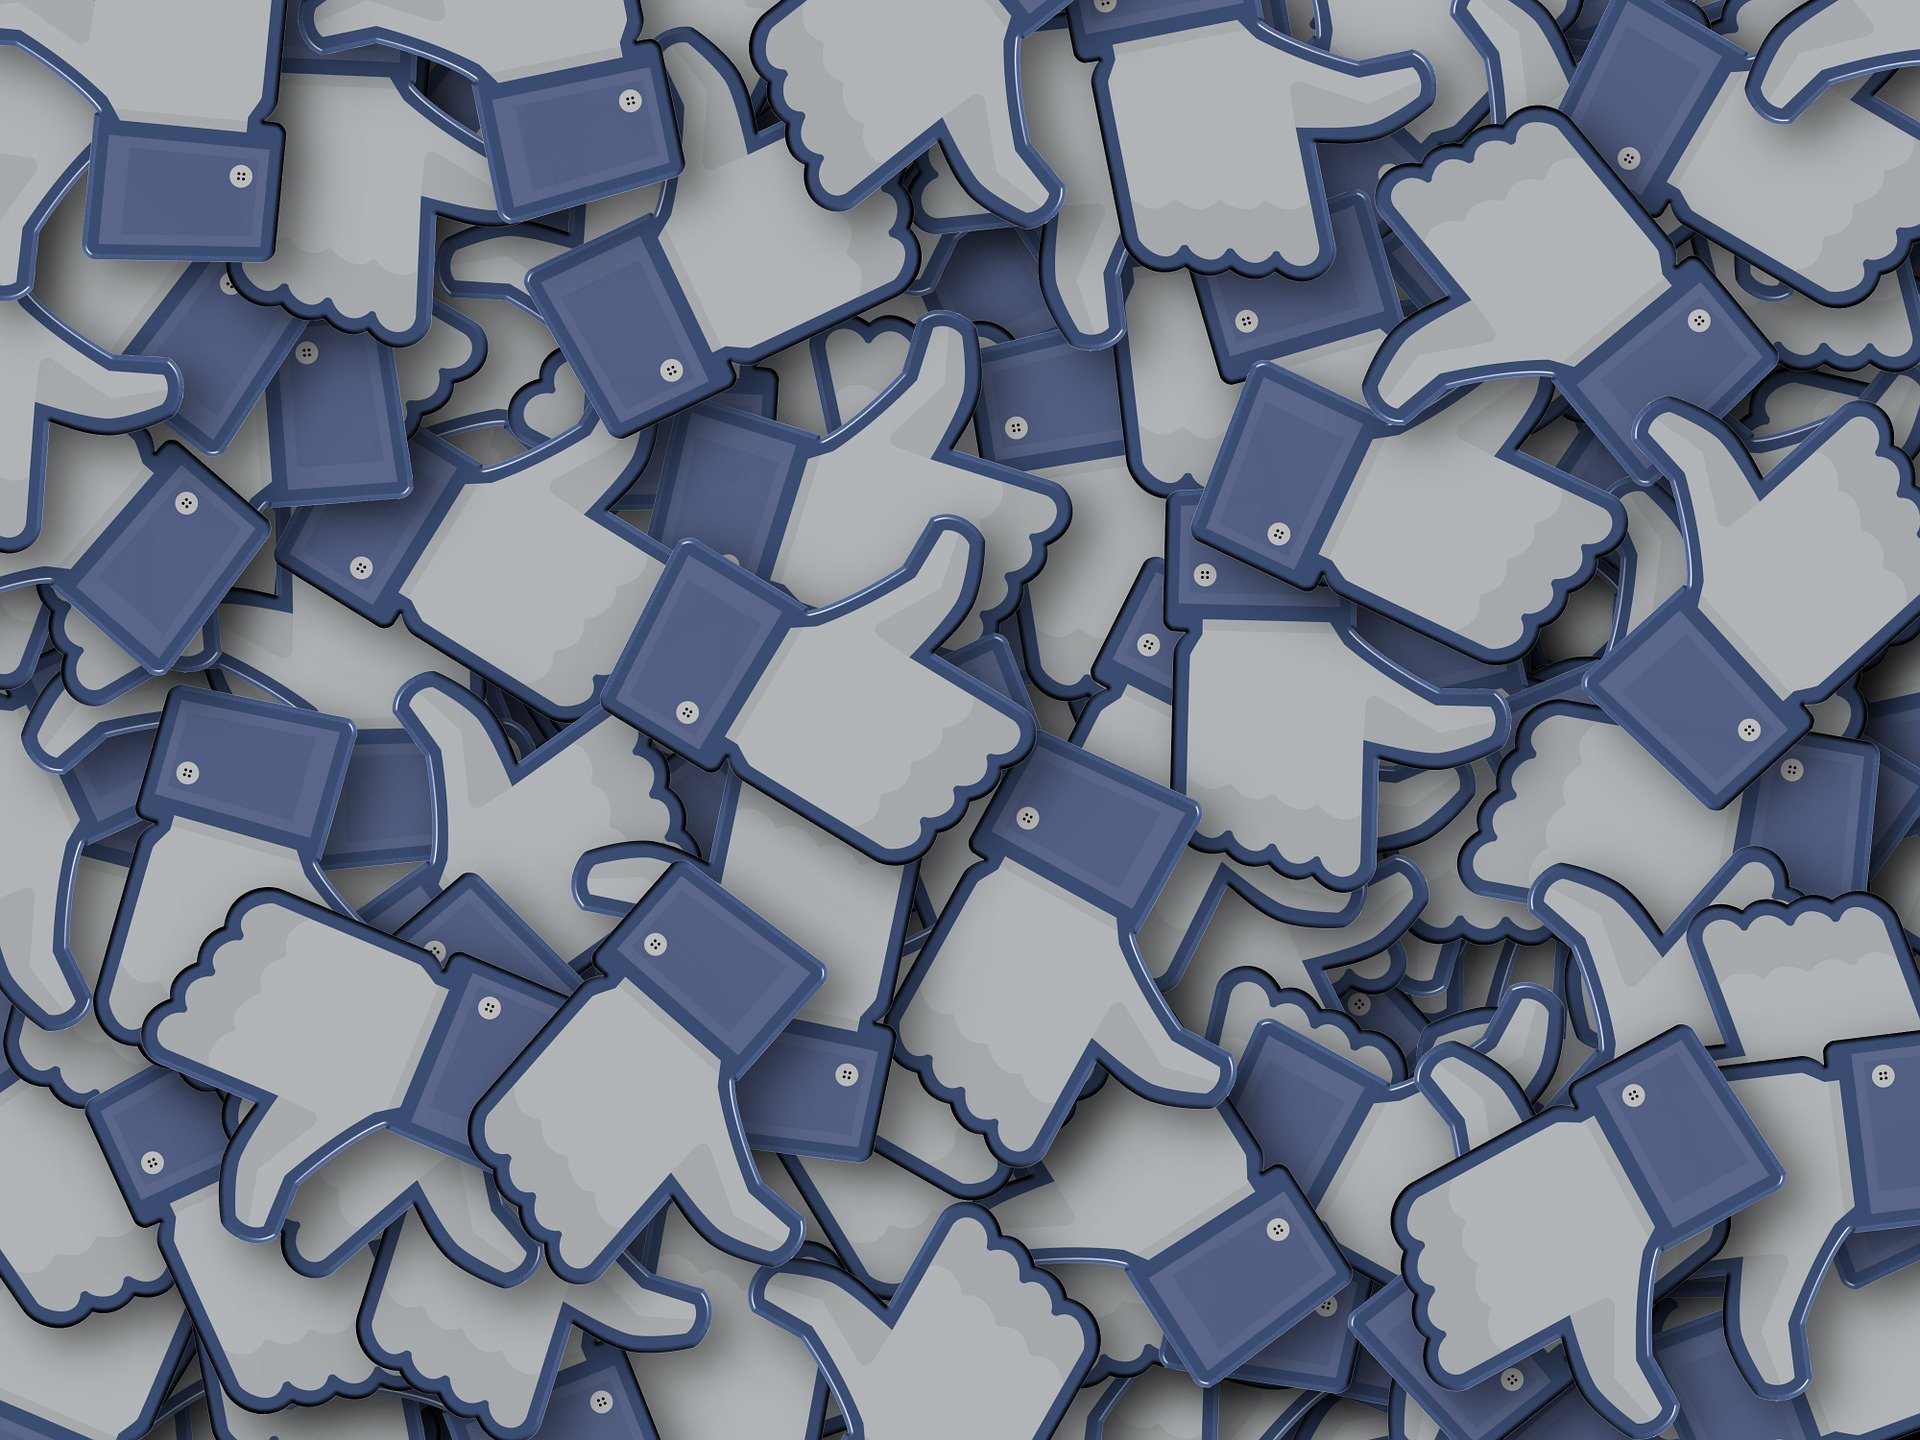 social-media-engagement-social-media-trends-facebook-likes